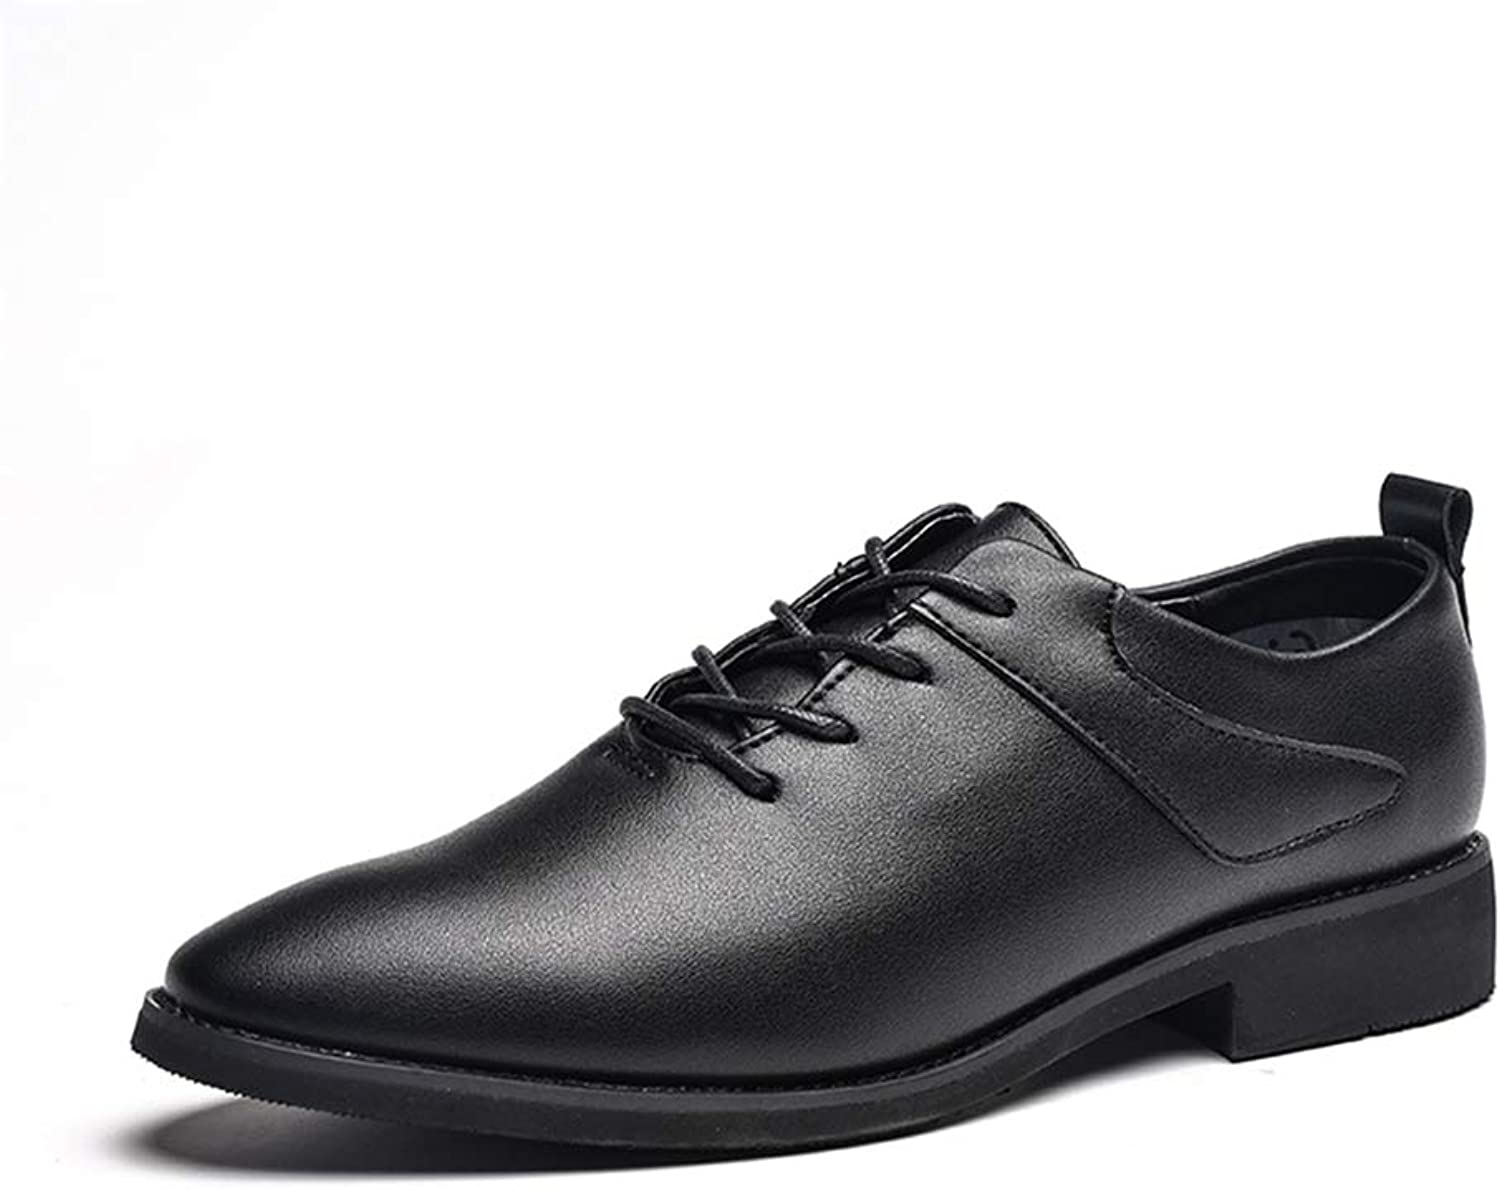 XIANGBAO-Personality Men's Fashion Business Oxford Casual Simple Classic Design Pointed Toe Formal shoes